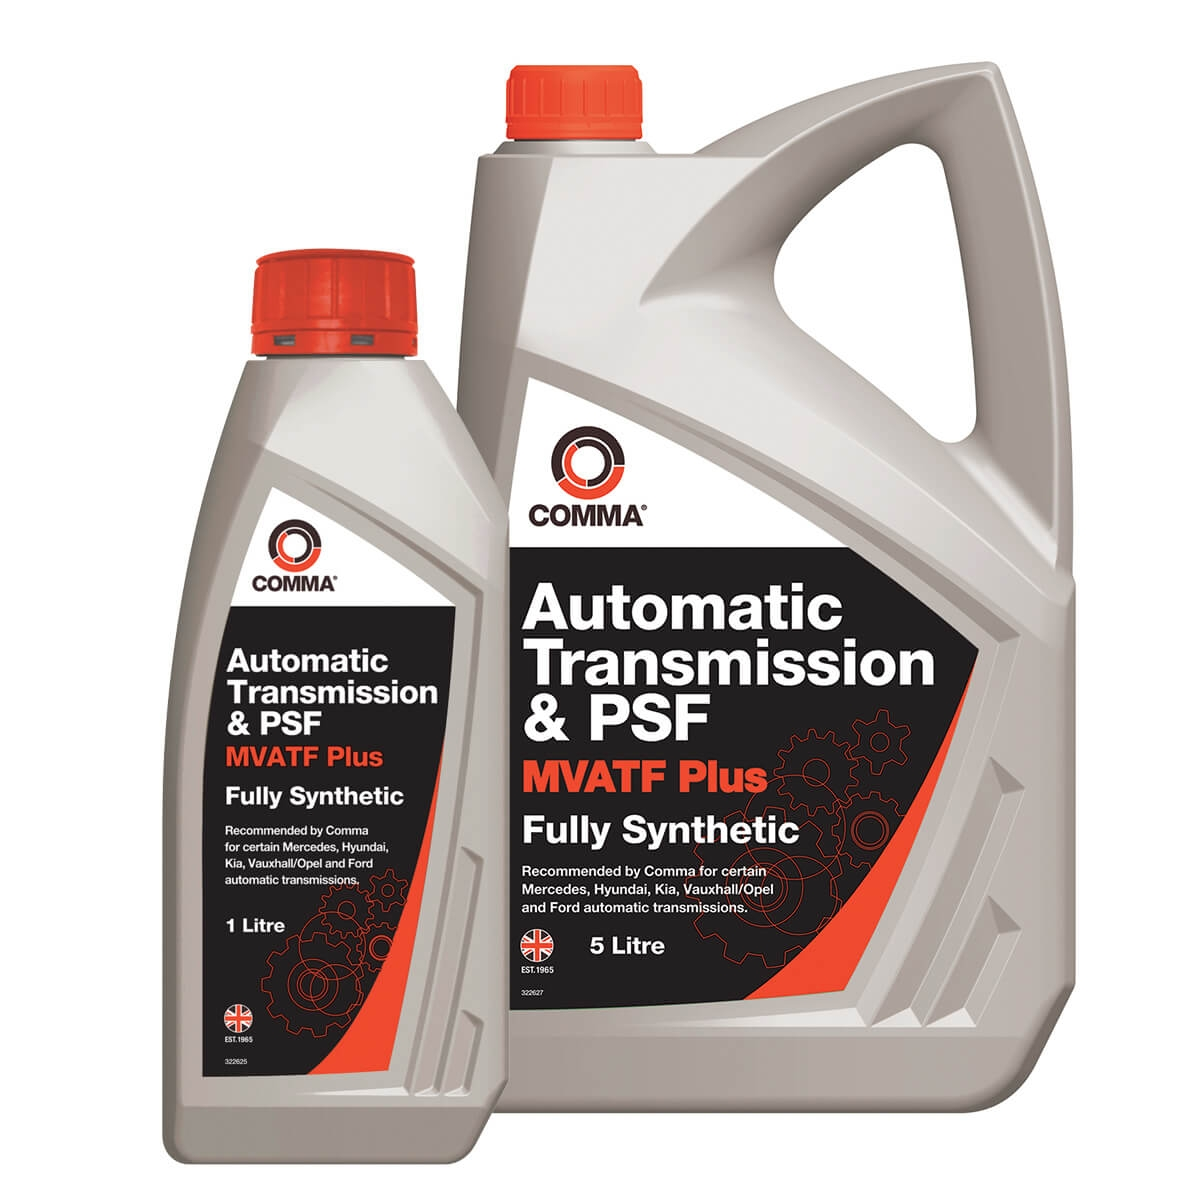 FIAT 500X Automatic Transmission Oil